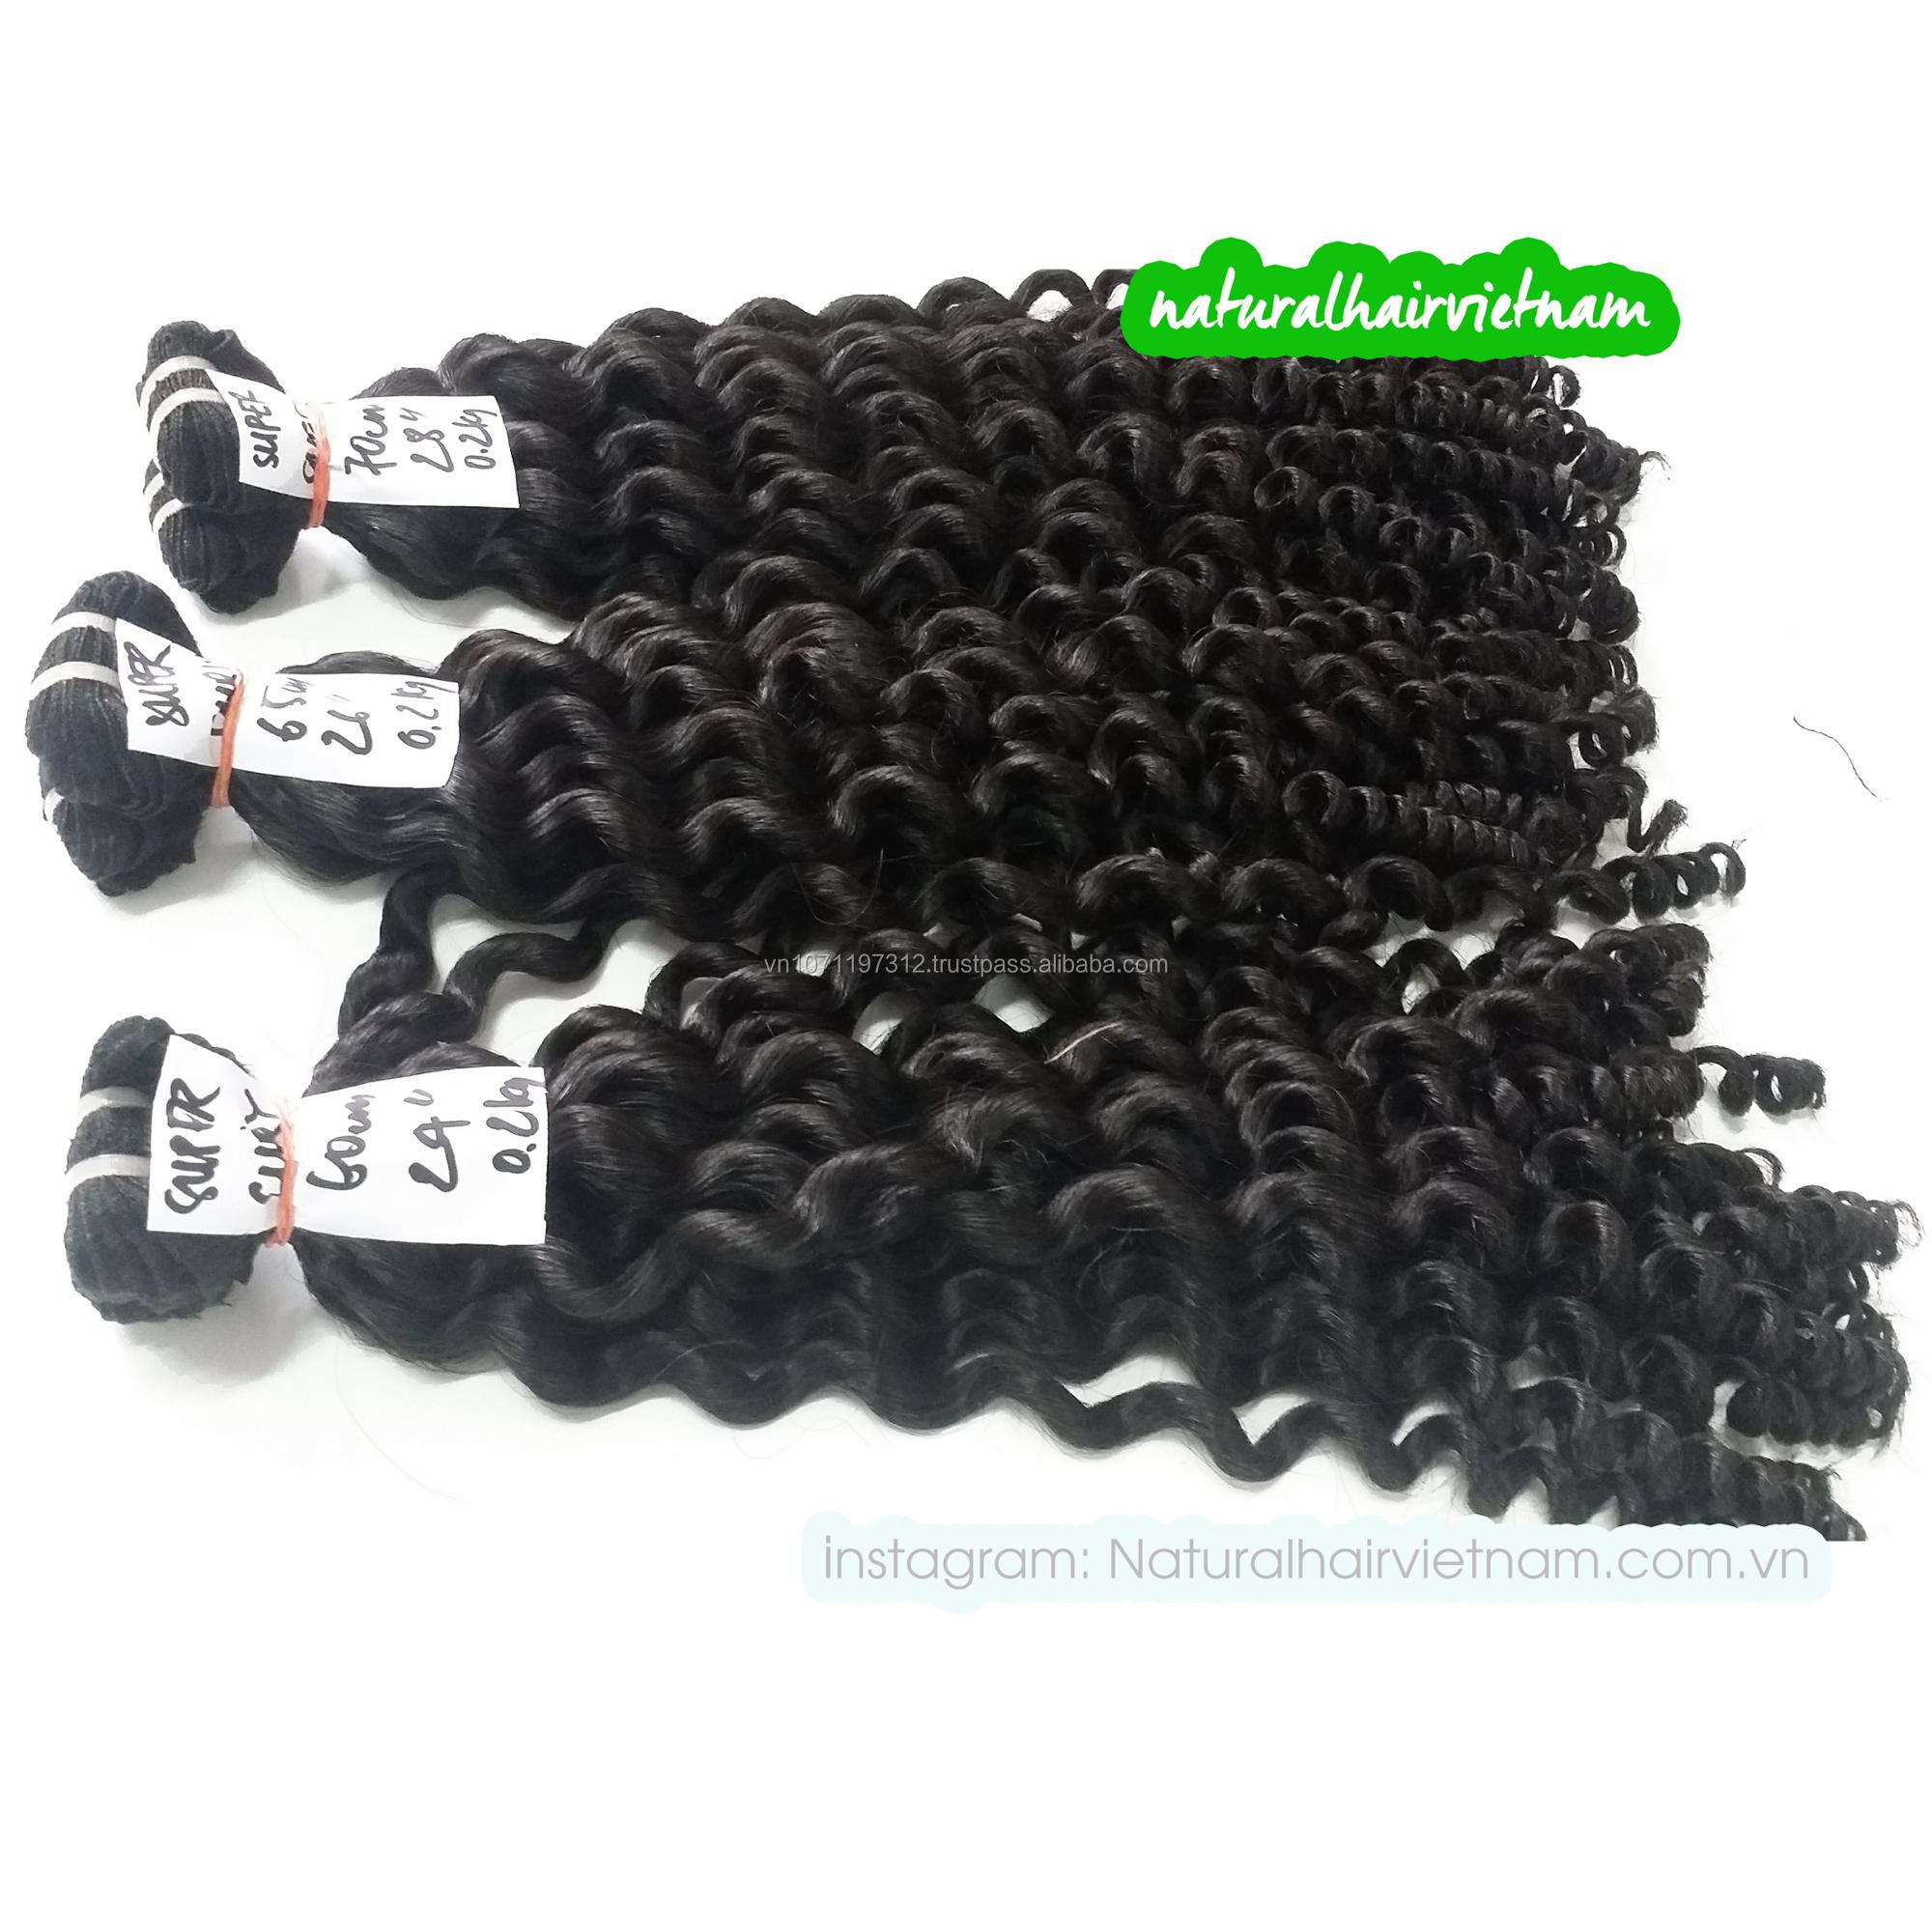 vietnamese human hair weft extensions for makings closures, frontals and wigs